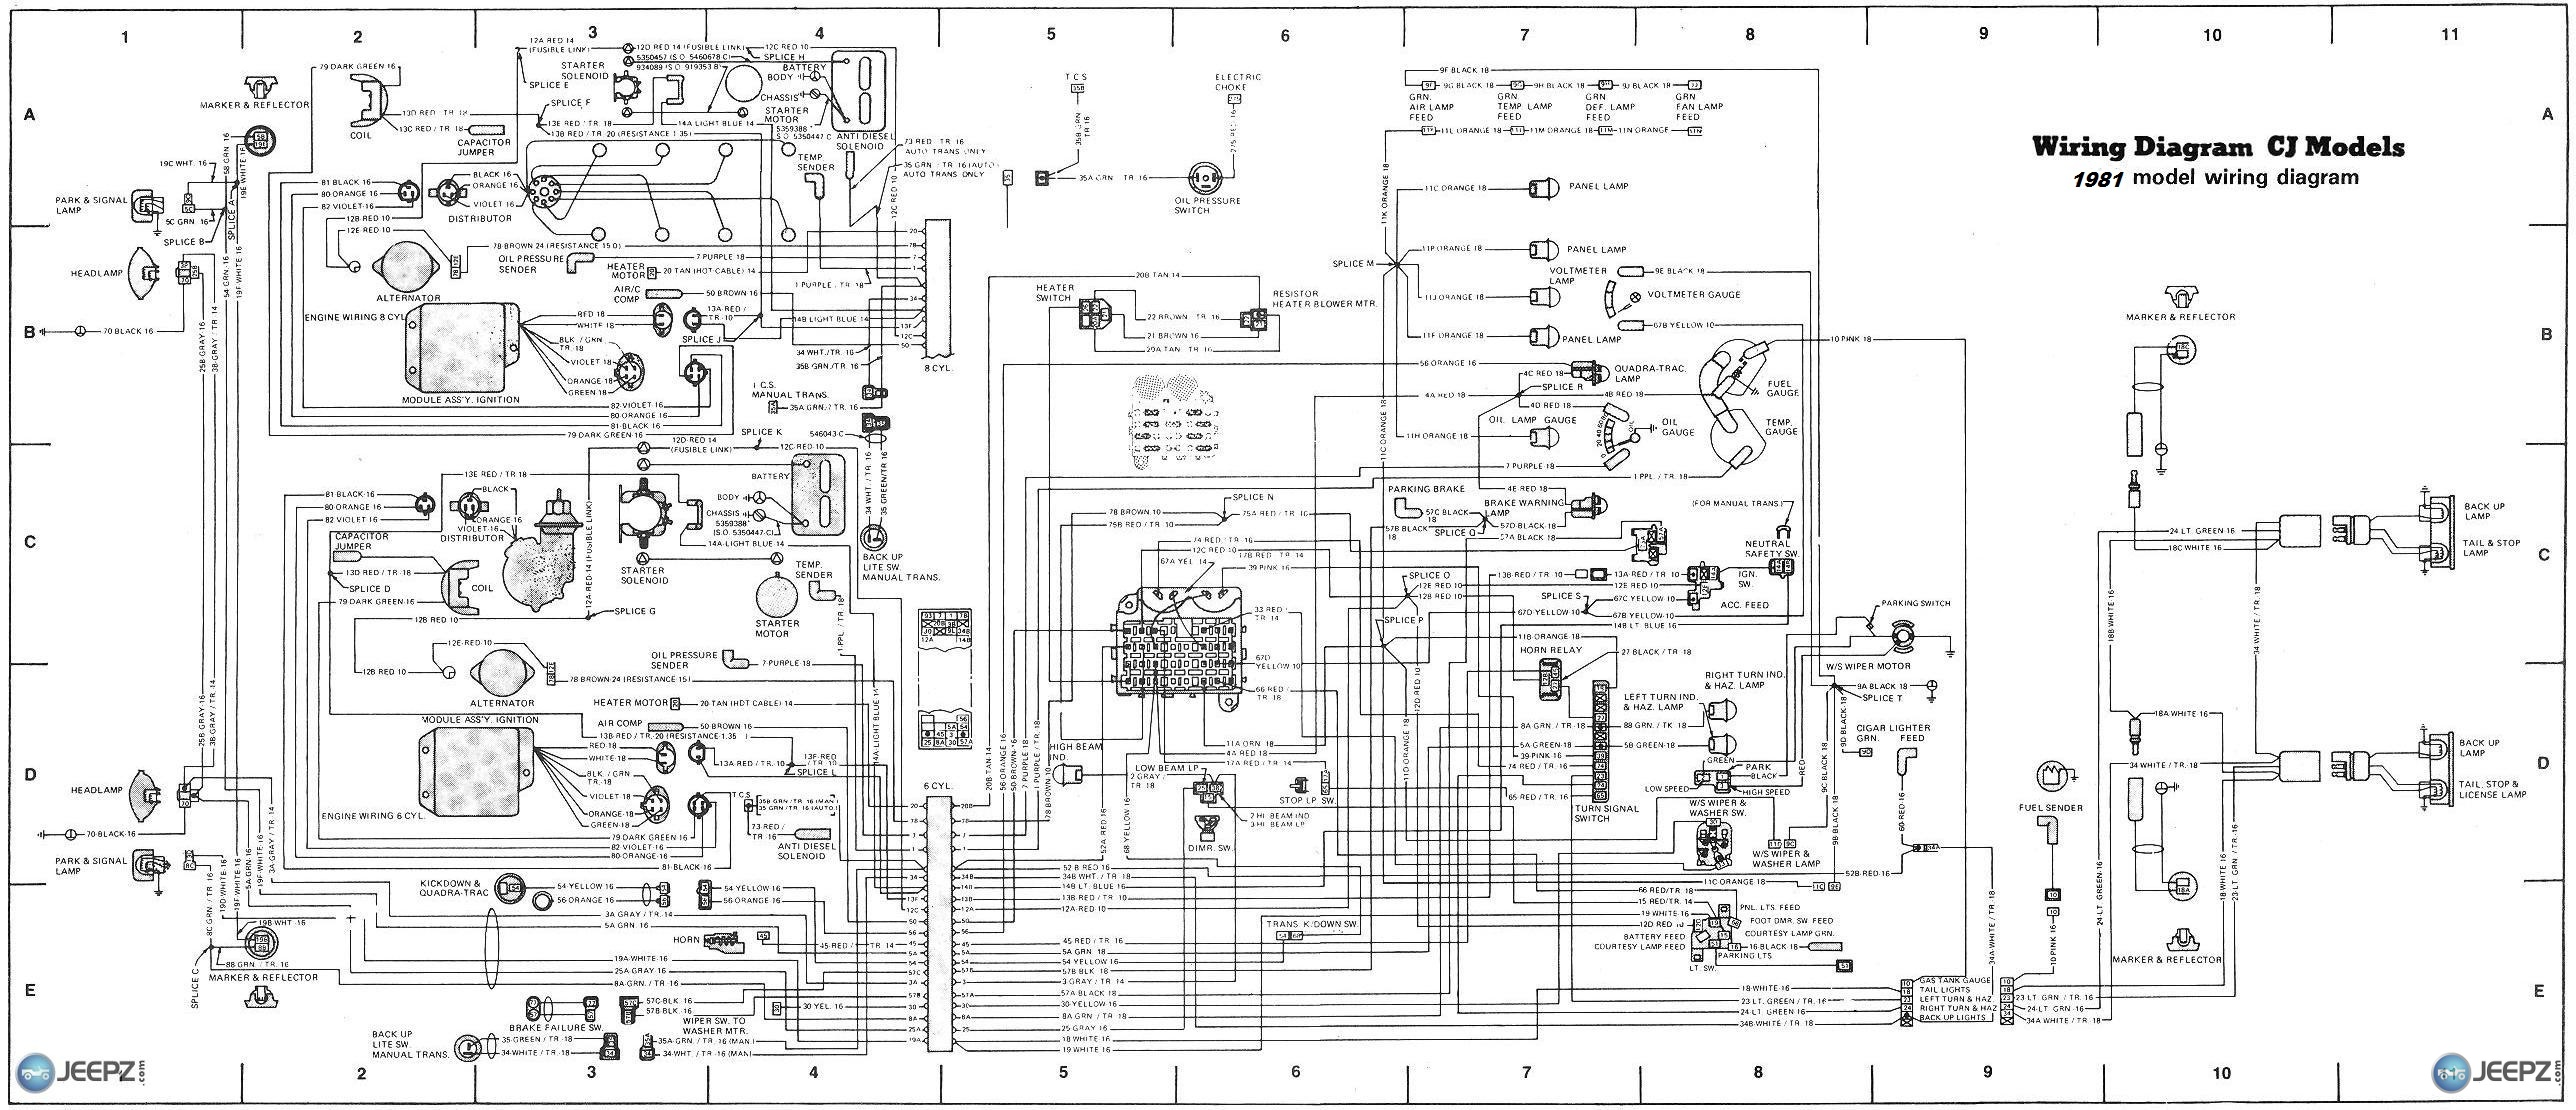 1974 jeep alternator wiring harness - fusebox and wiring diagram layout-hut  - layout-hut.sirtarghe.it  diagram database - sirtarghe.it